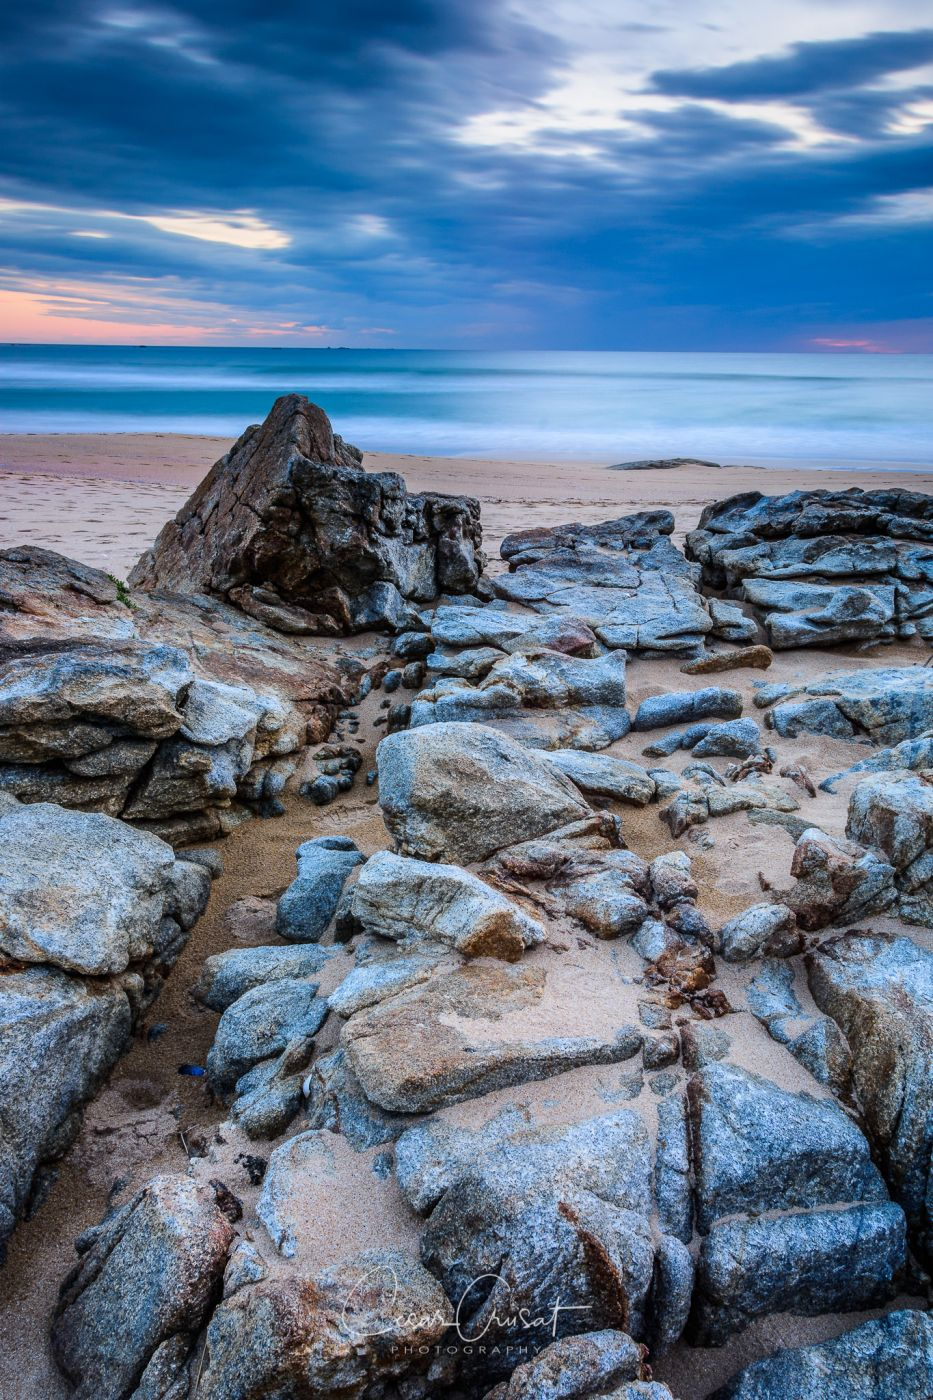 Sunset with rocks formation, Spain